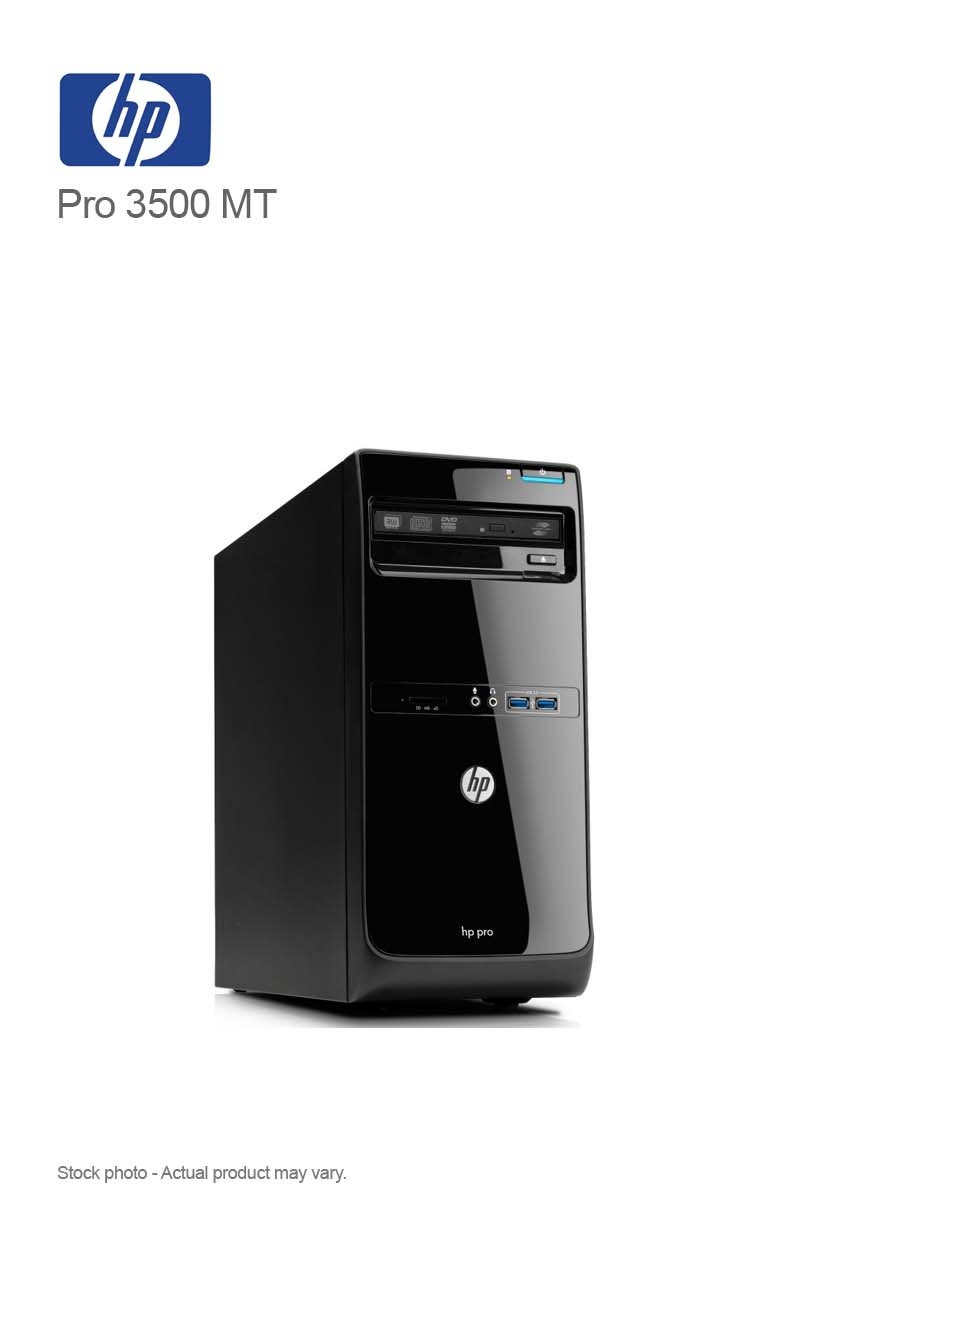 HP Pro 3500 Core i5-3470 3 60GHz 8GB 2 TB DVDRW WIN 10